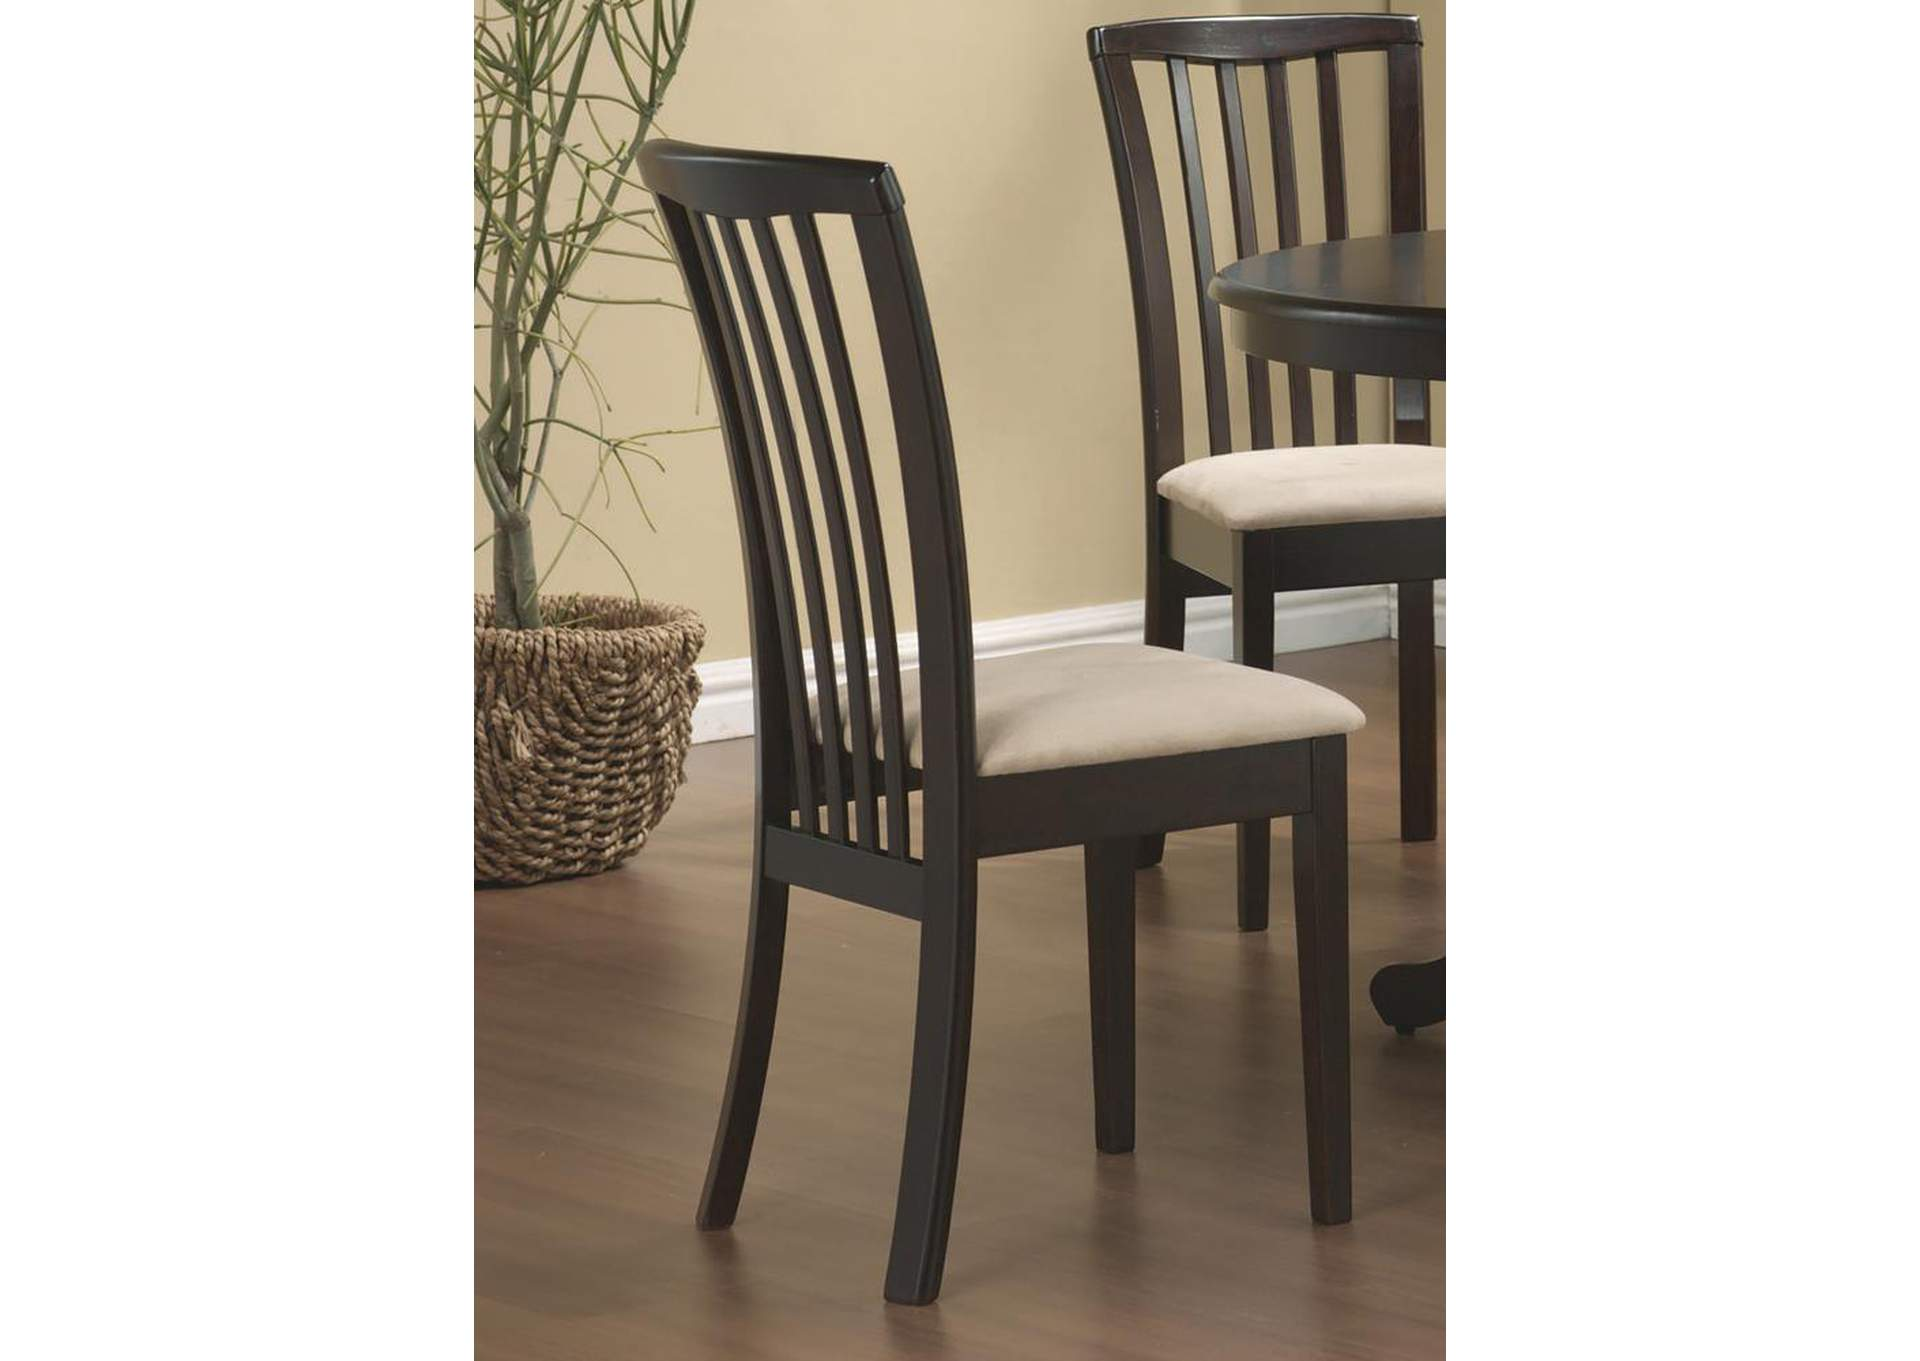 Cappuccino Brannan Casual Side Dining Chair,Coaster Furniture